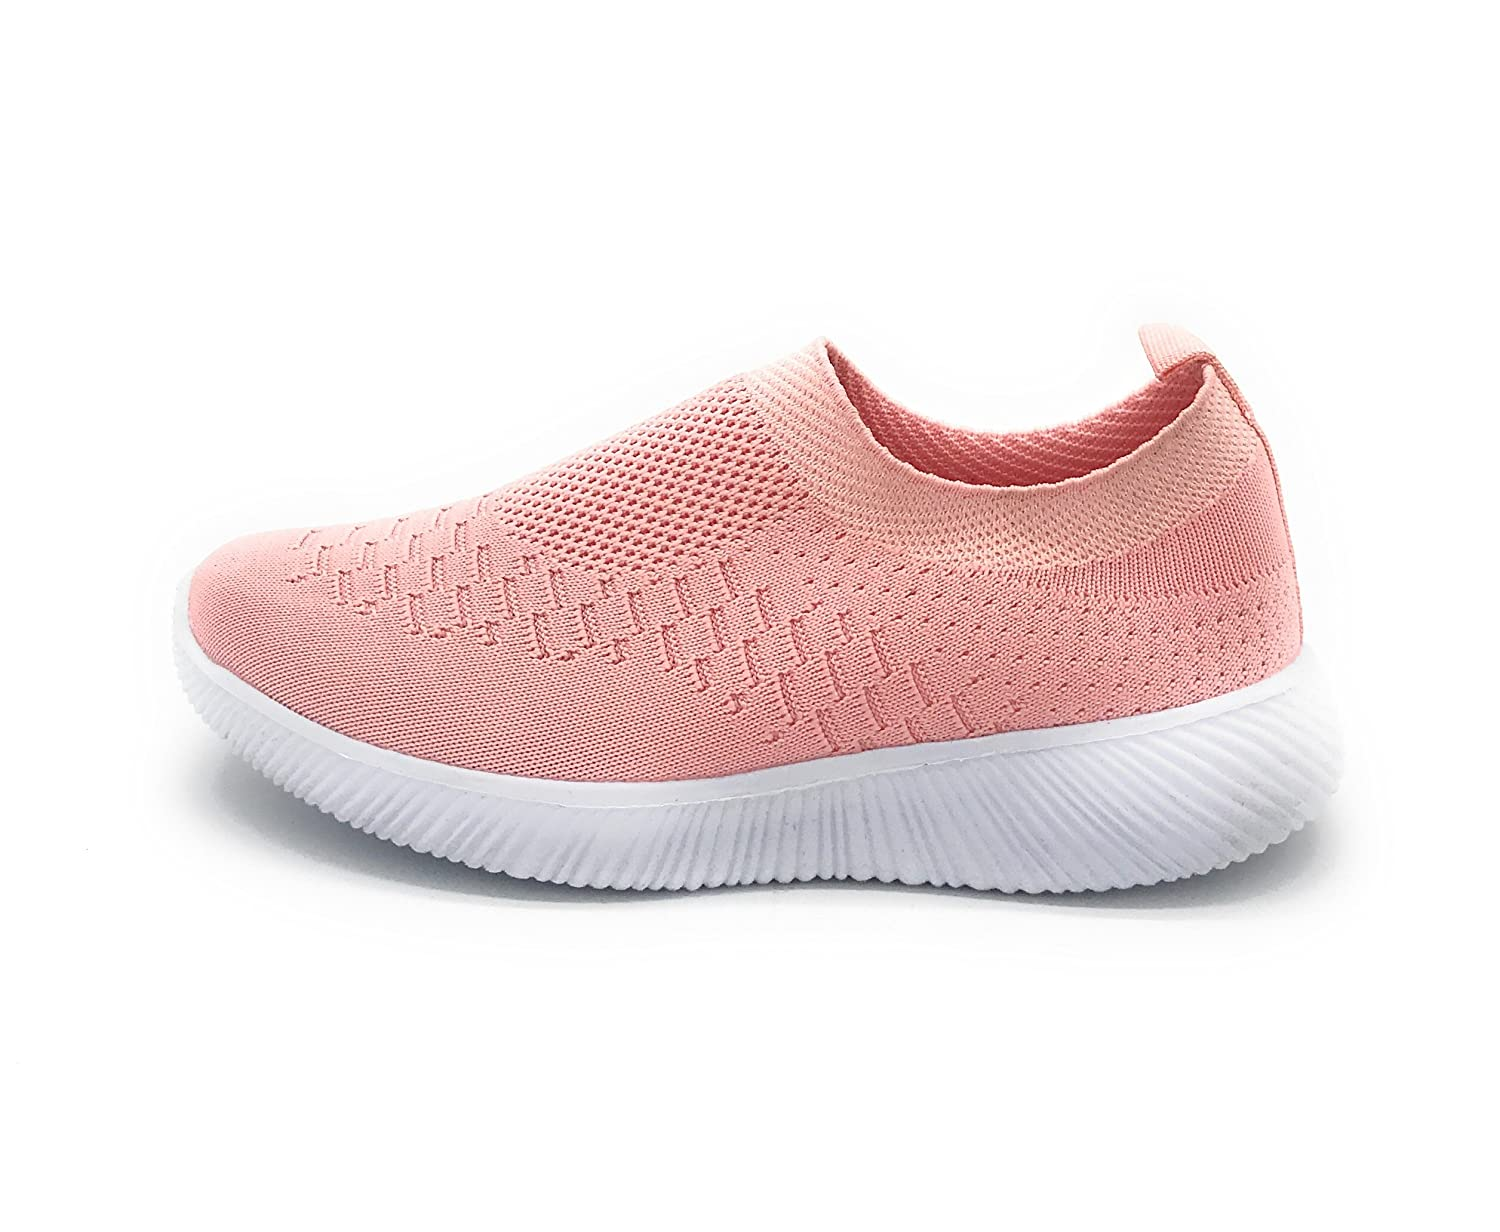 Blue Berry EASY21 Kids Breathable Fashion Slip-On Flyknit Athletic Sports Shoes